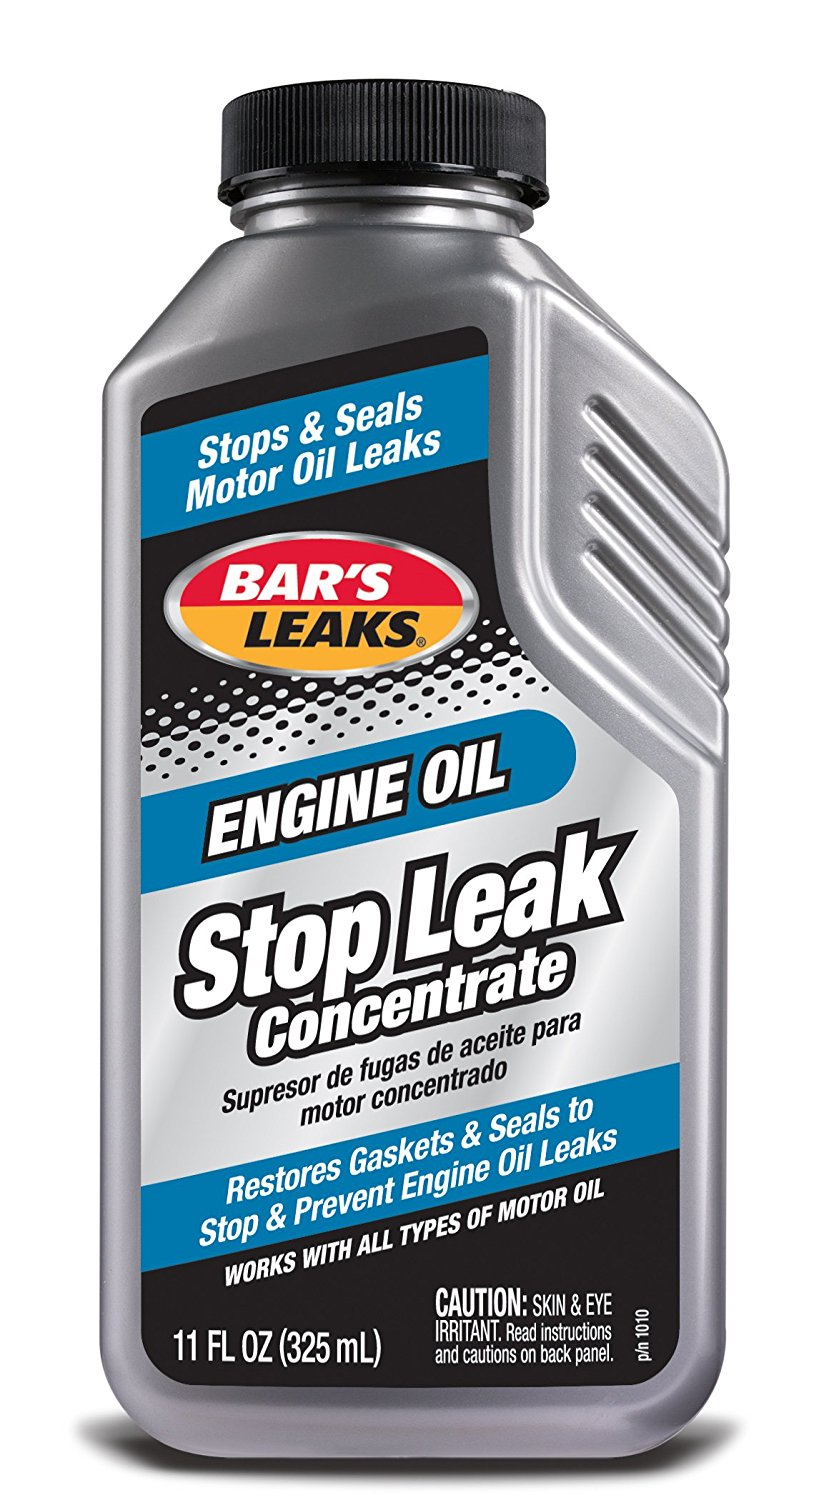 3 Best Engine Oil Stop Leak Additives - Do They Work? - Axle